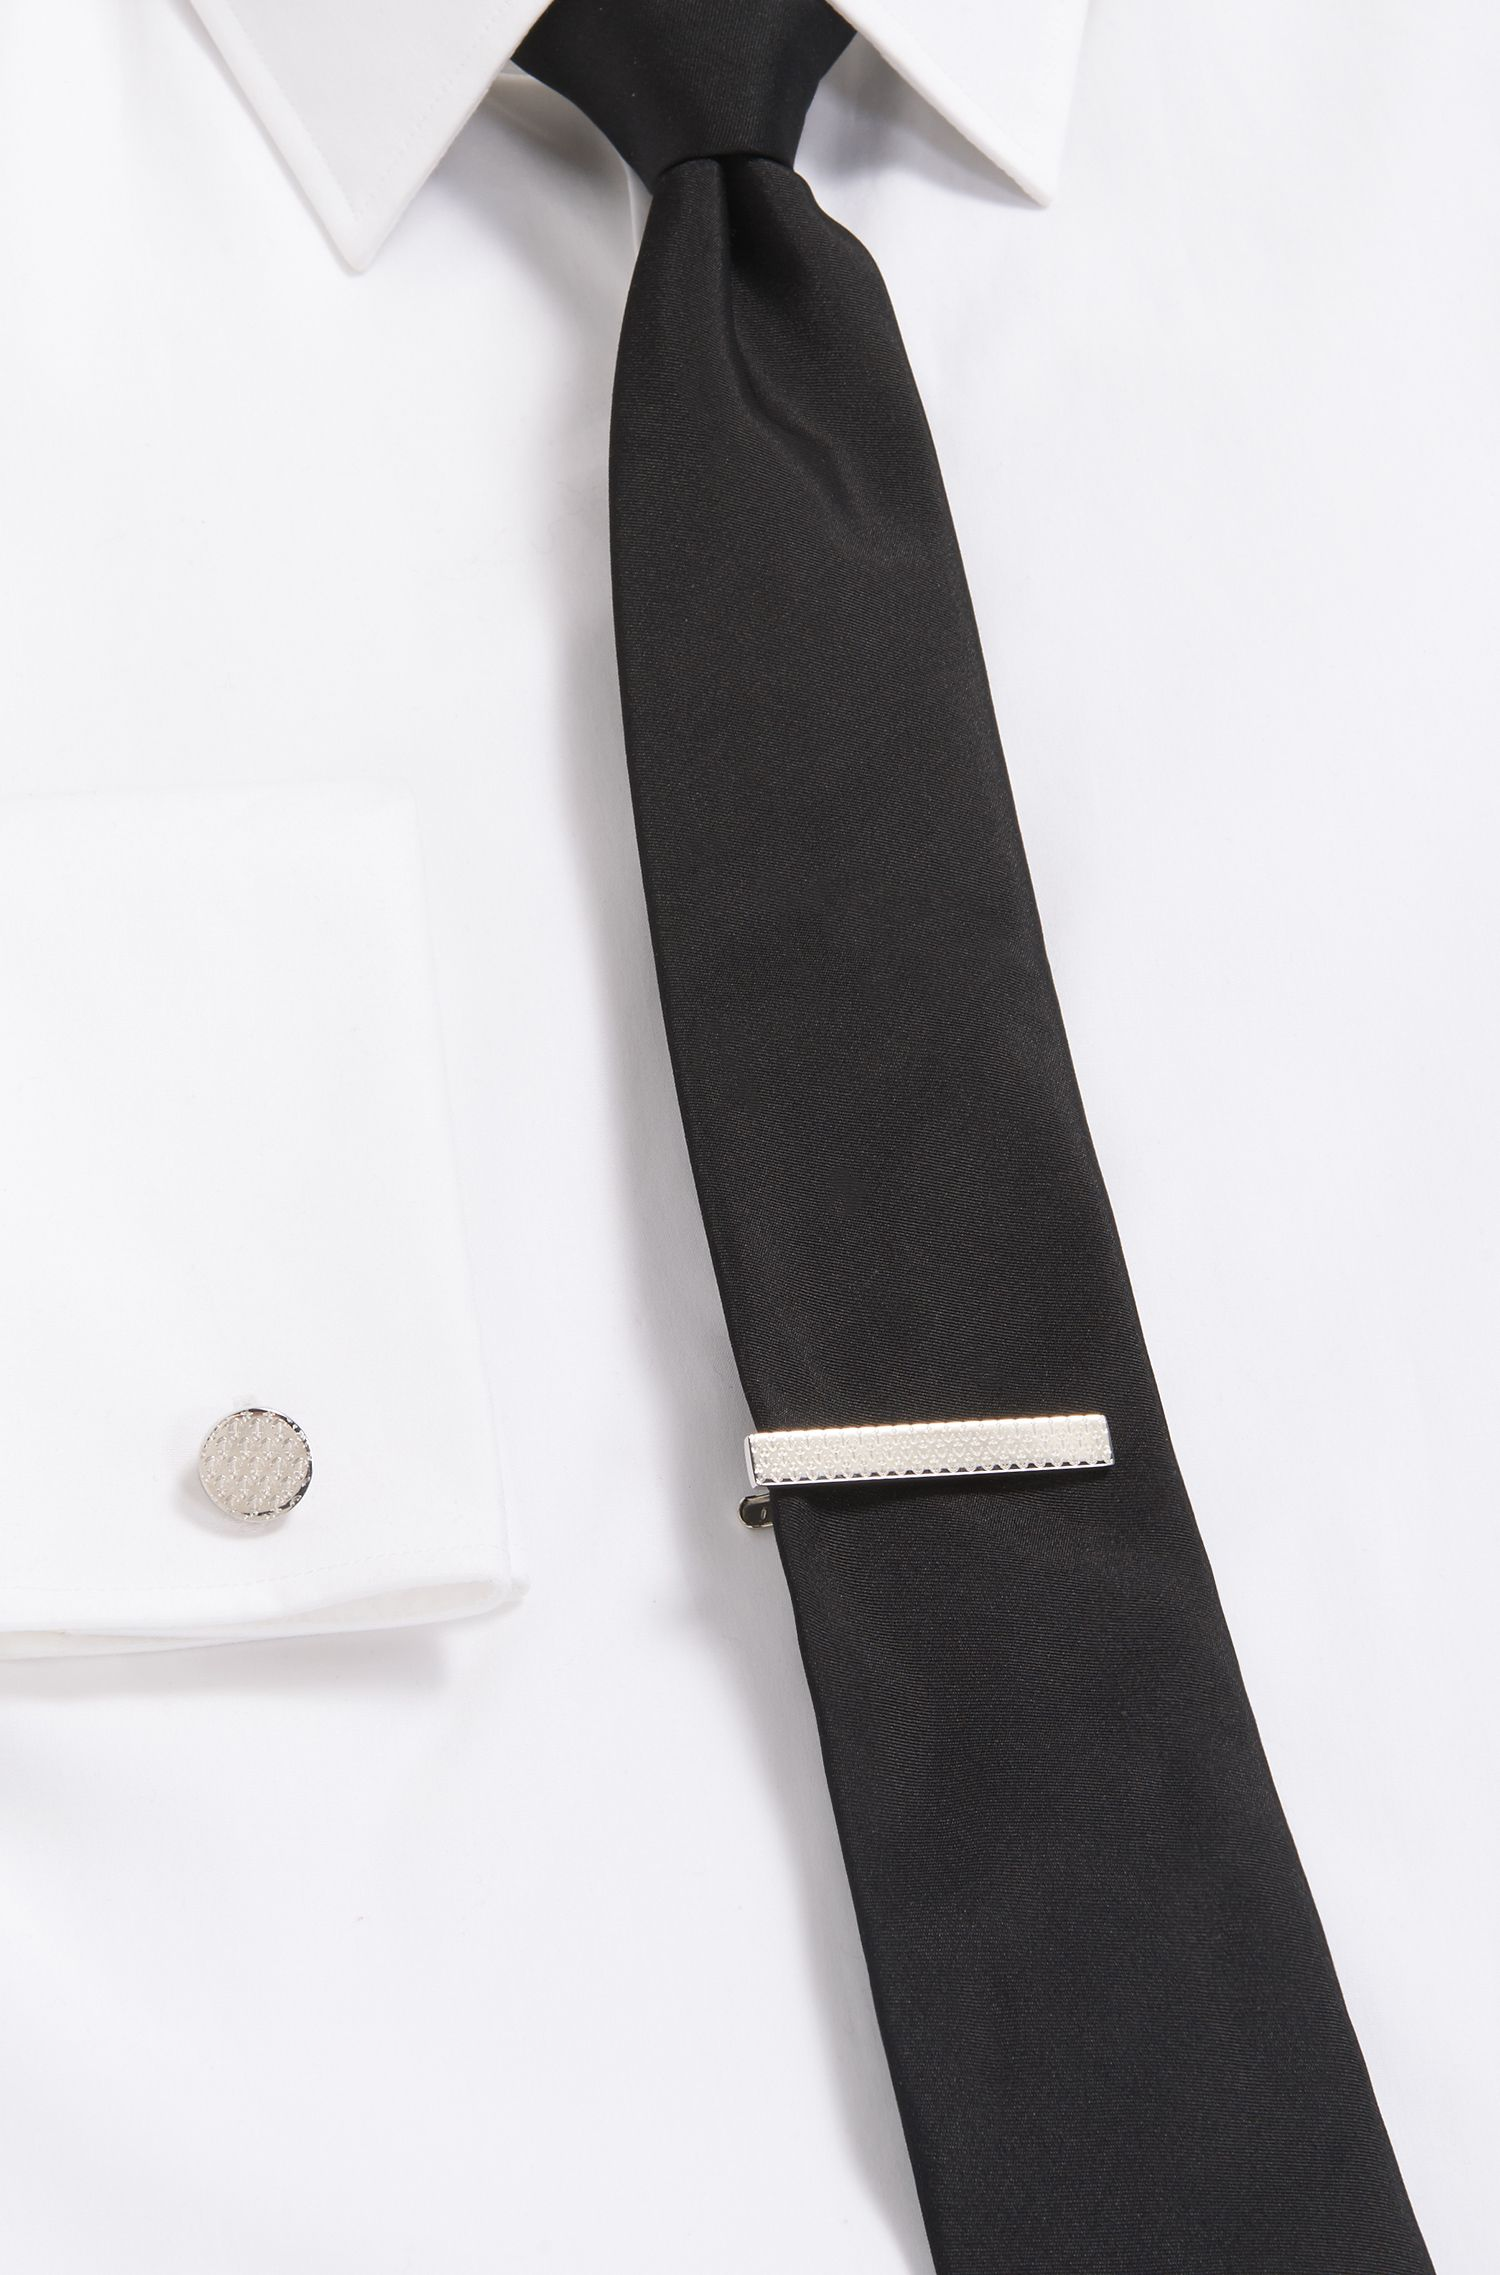 Hand-polished tie clip with engraved anchor design